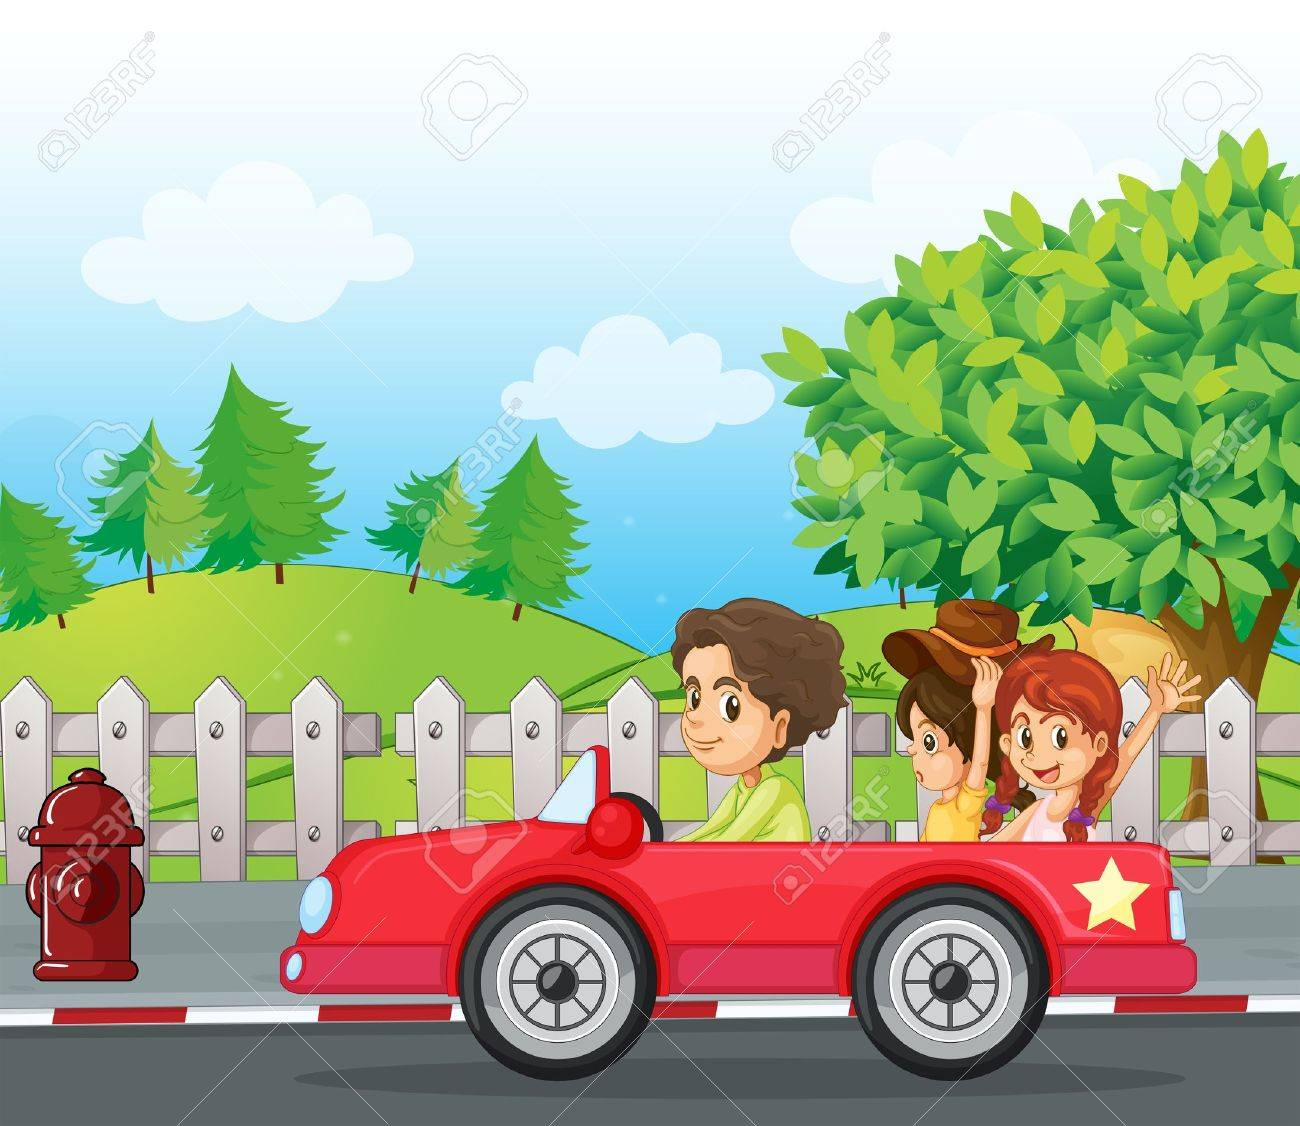 Illustratio of a young gentlemen driving a car with two ladies at the back Stock Vector - 17821556